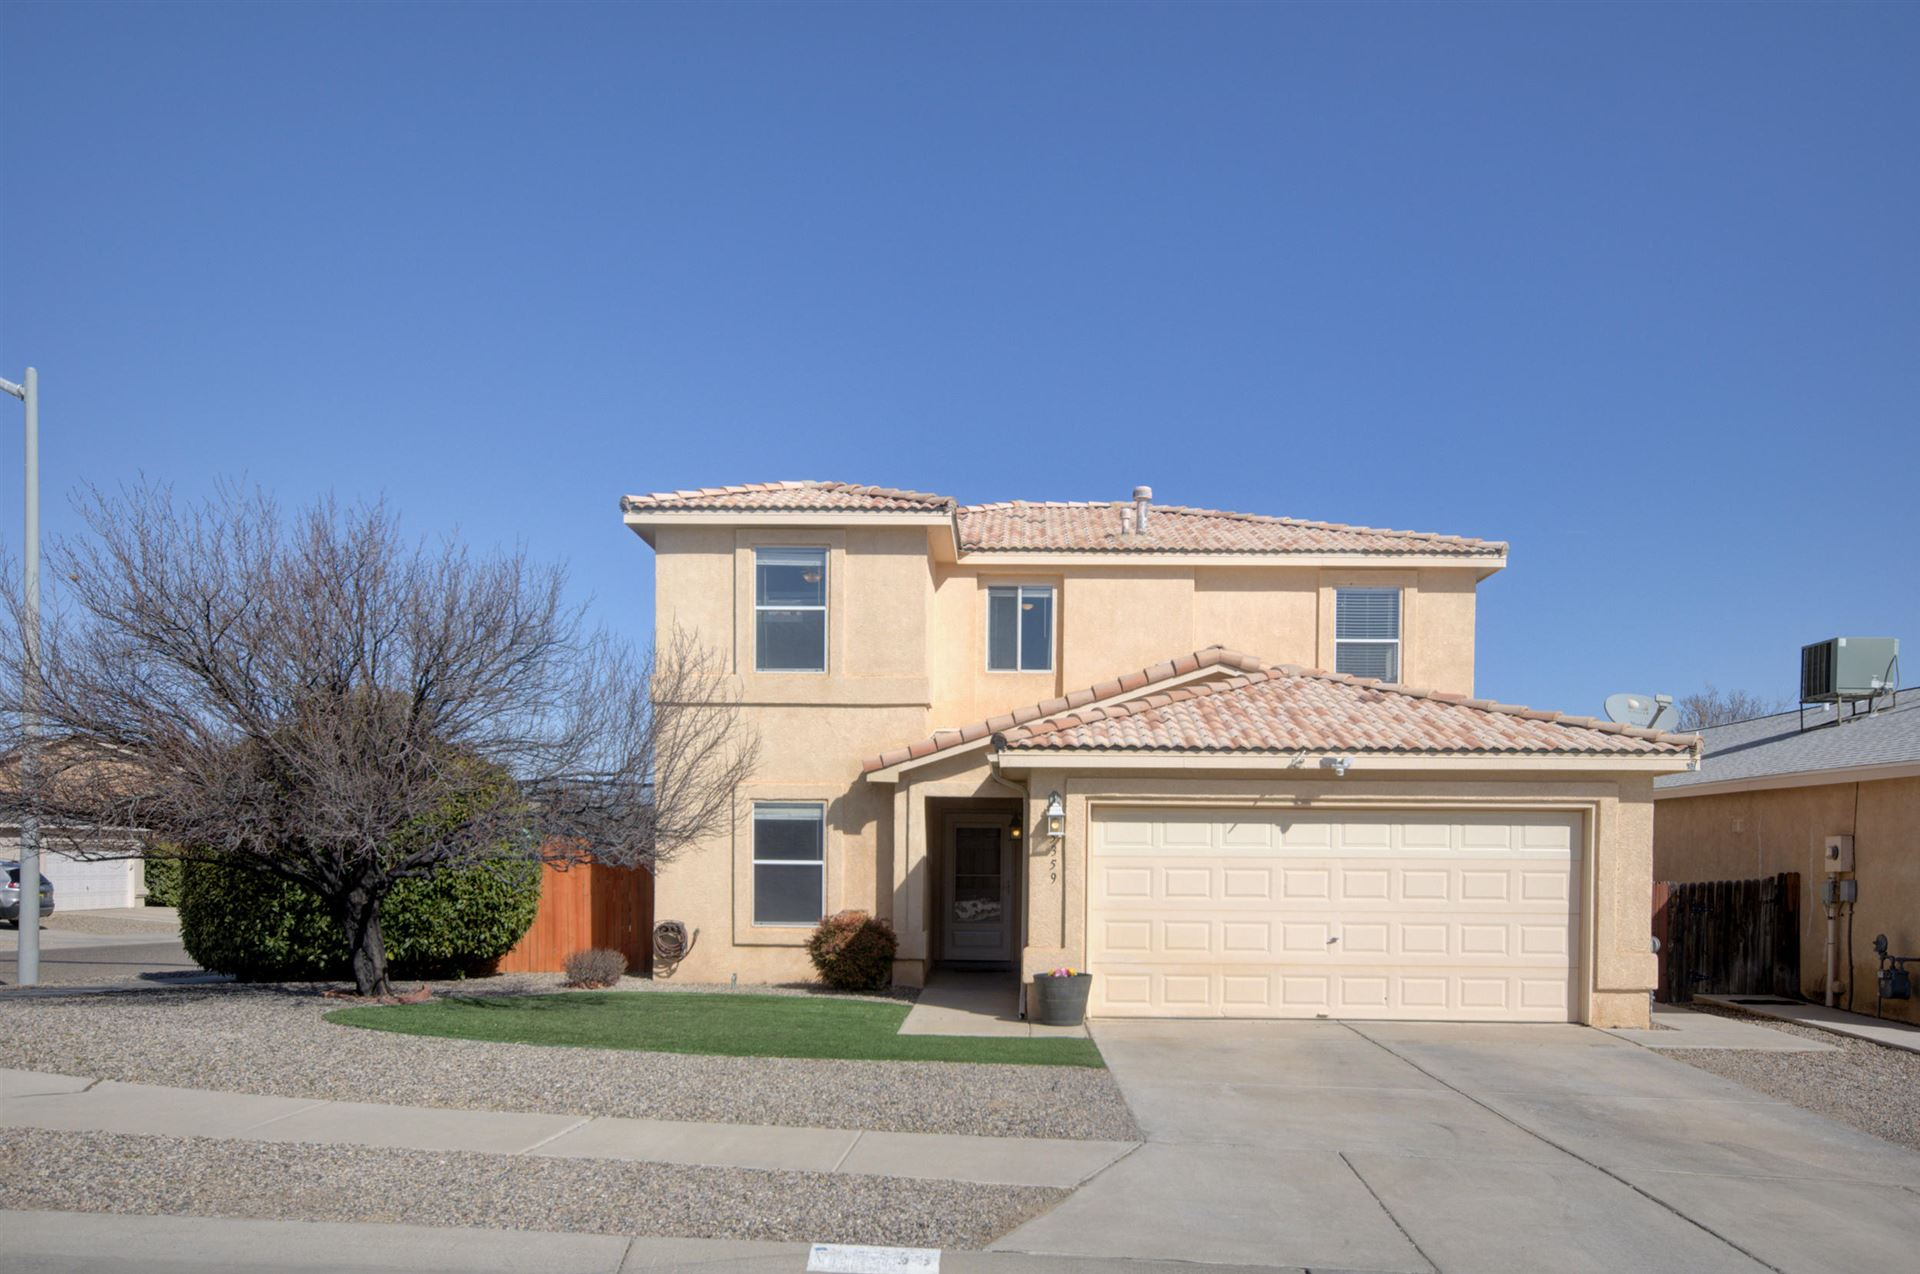 5359 CROOKED CREEK Avenue NW, Albuquerque, NM 87114 - MLS#: 986709